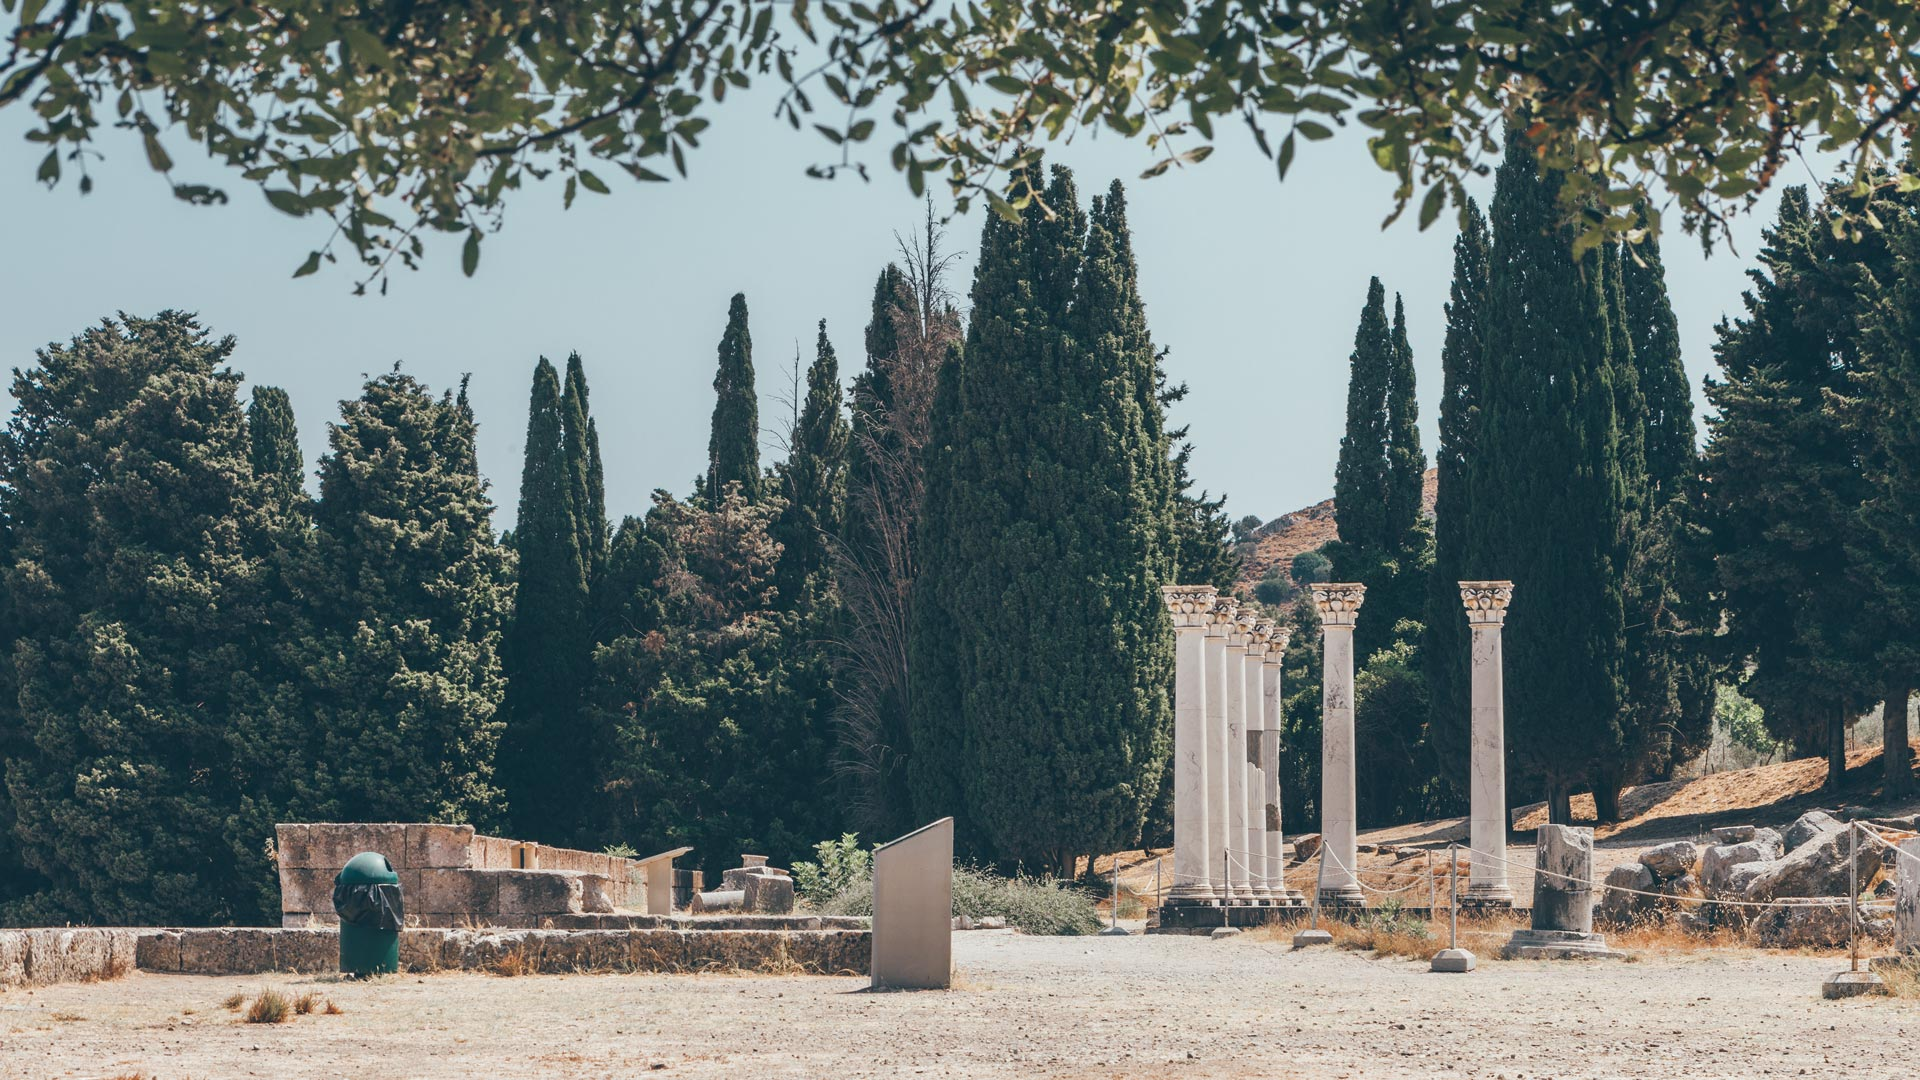 The seven columns of the Temple of Apollo (father of Asclepius) have been restored to help bring the site back to life